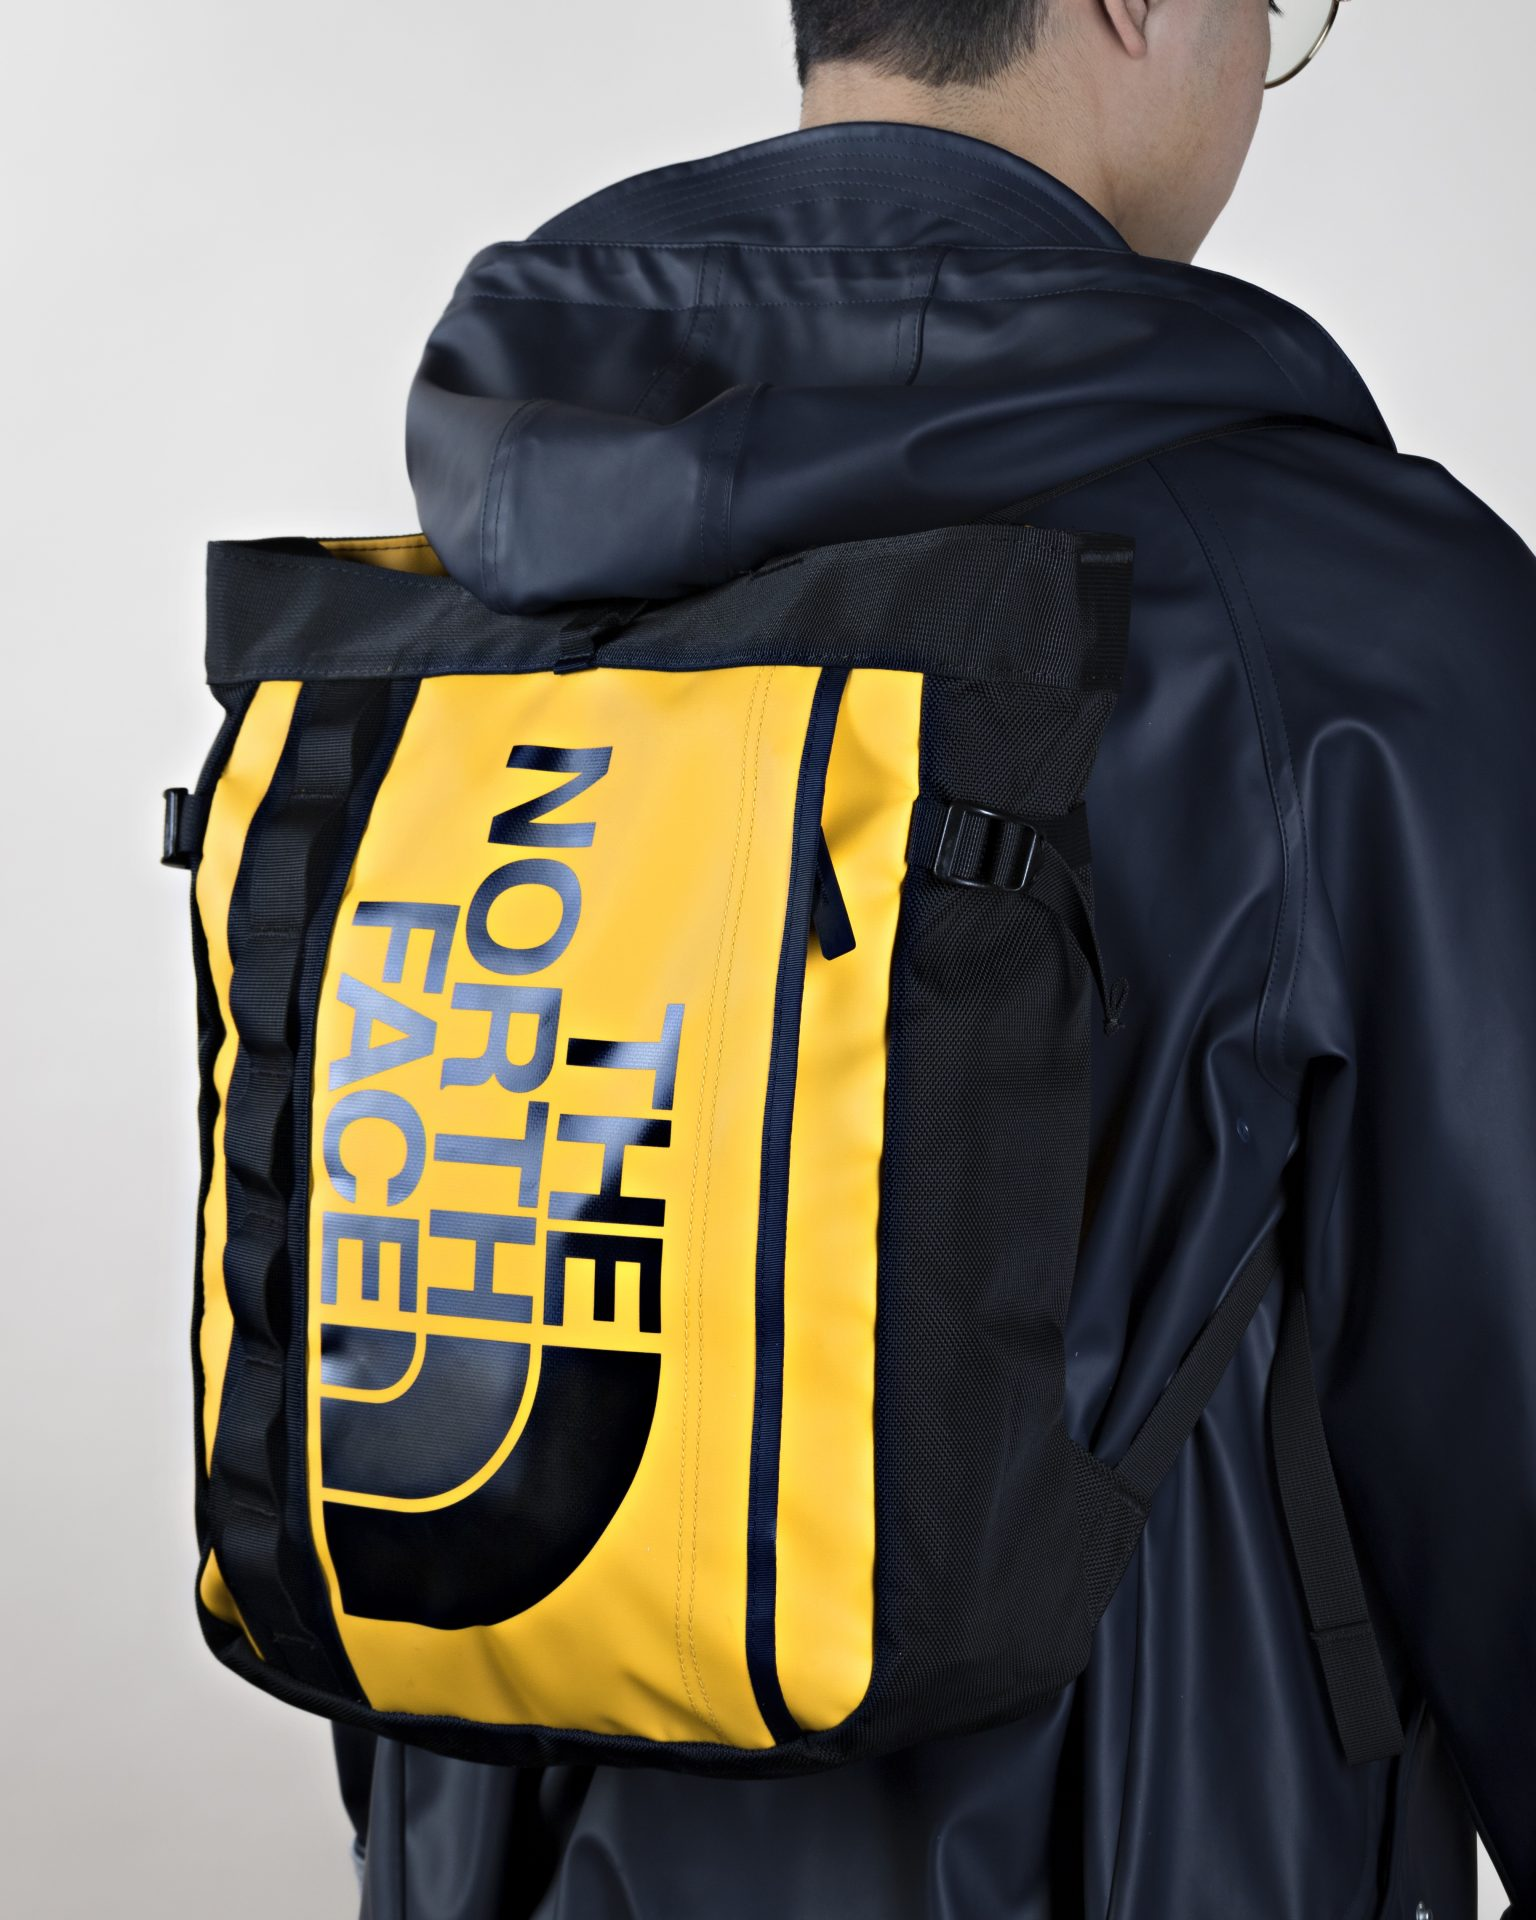 Productfotografie - The North Face Packshot Tote Bag